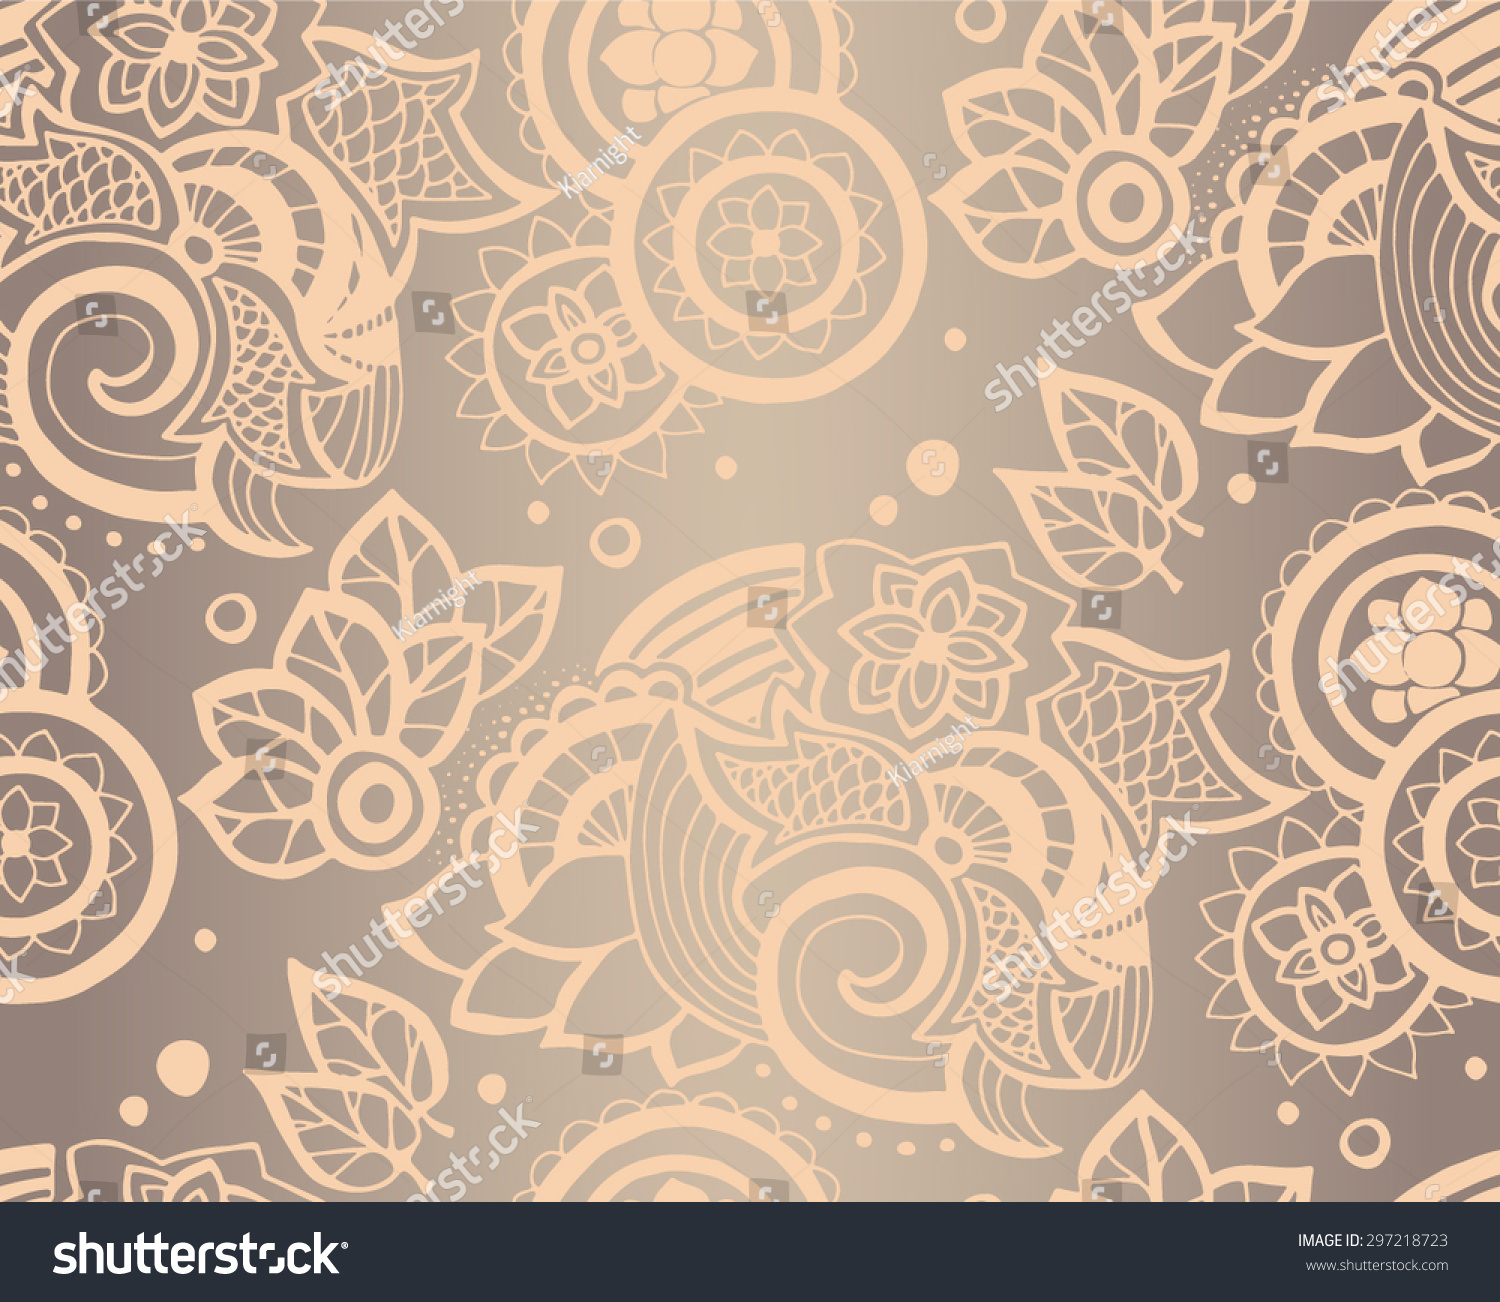 stock vector hand drawn abstract seamless pattern